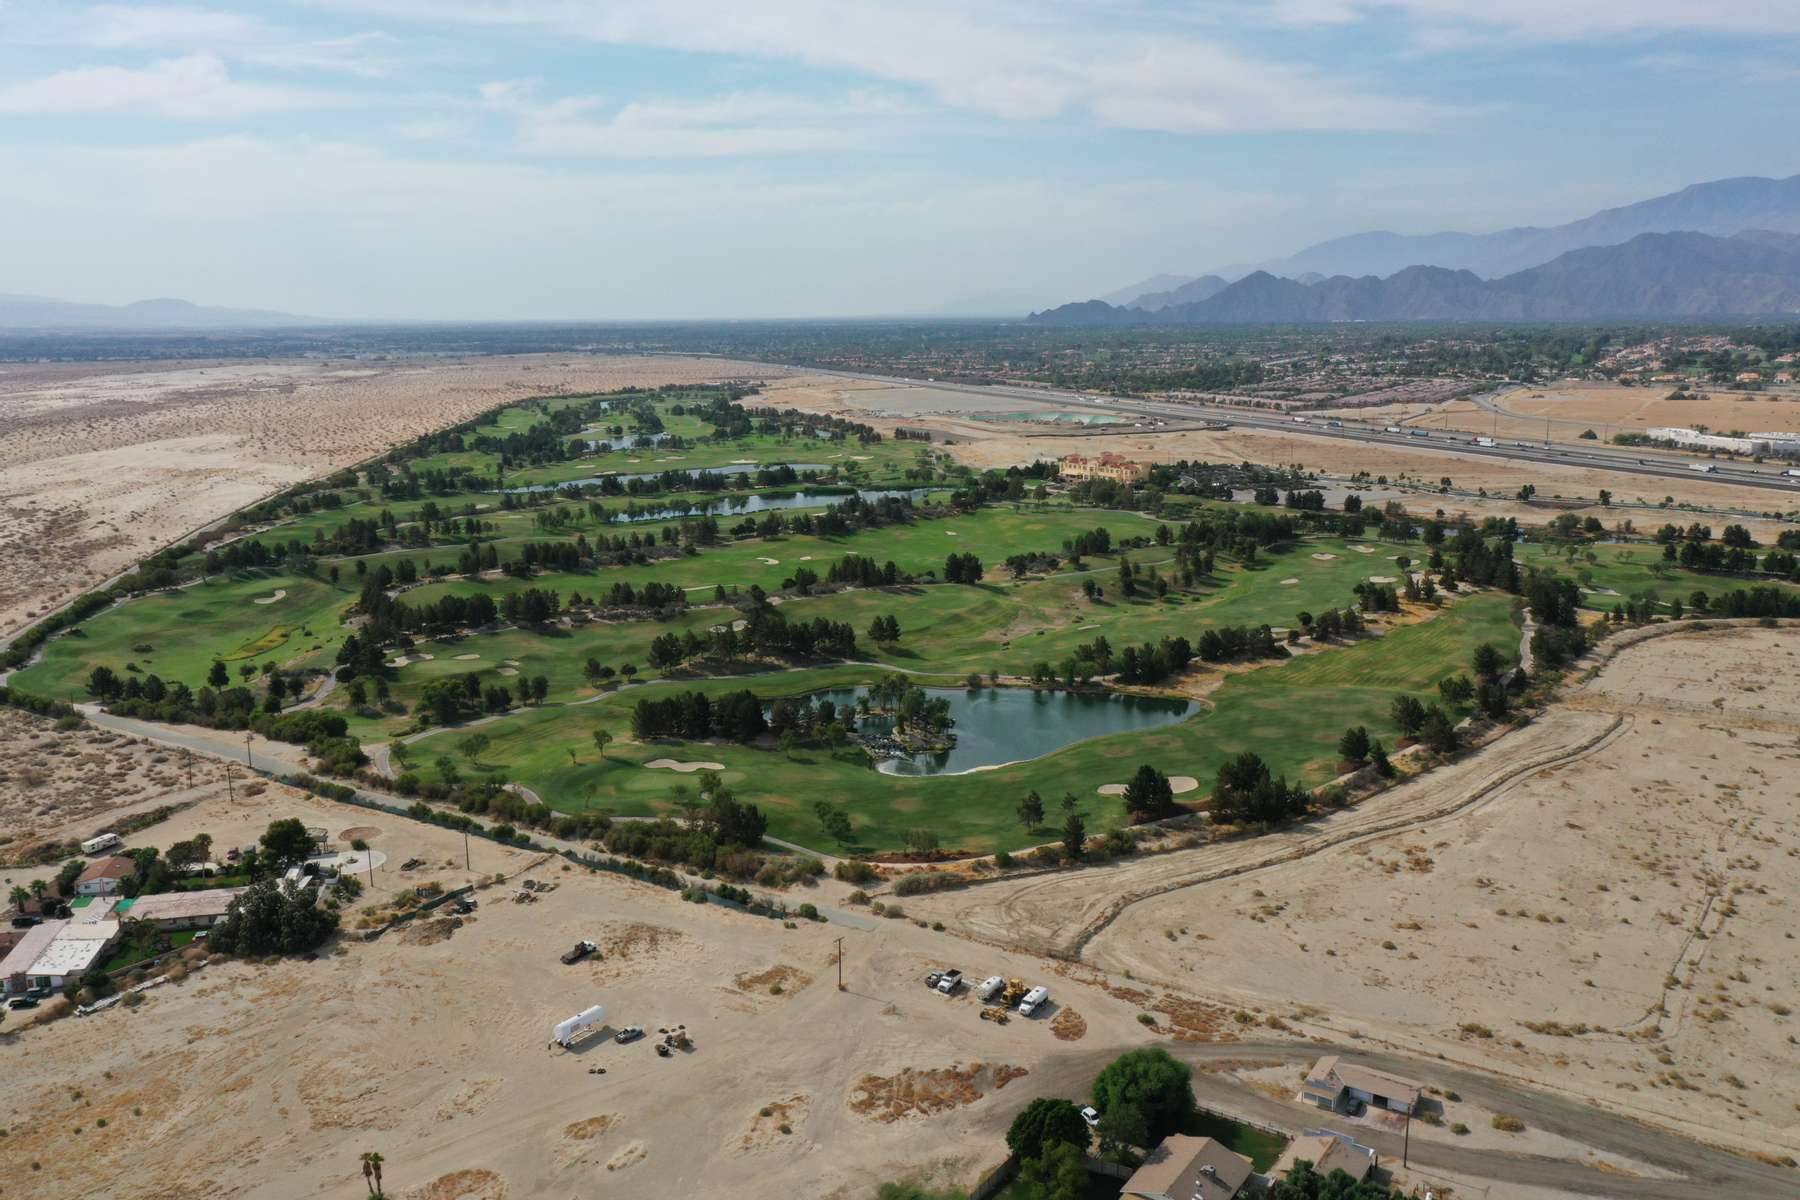 An aerial view shows a golf course next to desert landscape as California faces its worst drought since 1977, in Palm Springs, California, U.S., June 29, 2021. Picture taken with a drone June 29, 2021.